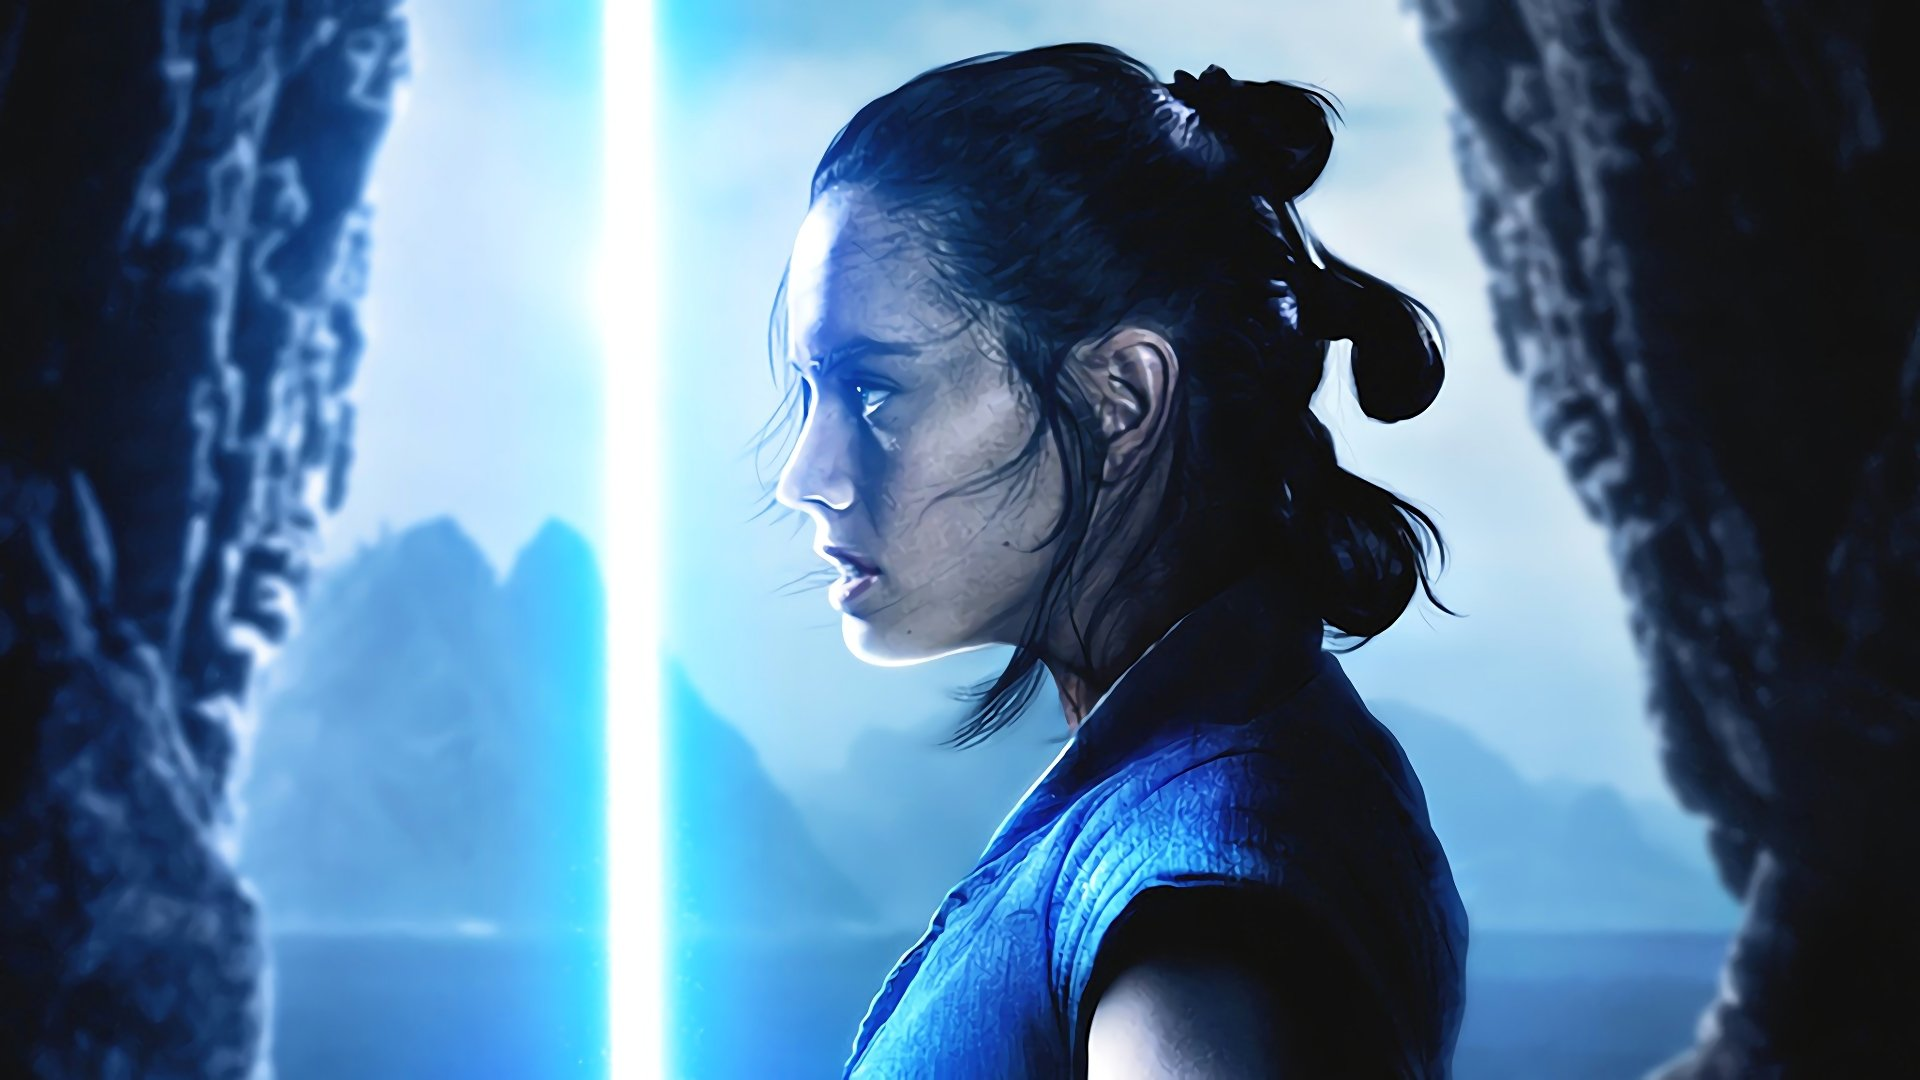 Rey Lightsaber Hd Wallpaper Background Image 1920x1080 Id